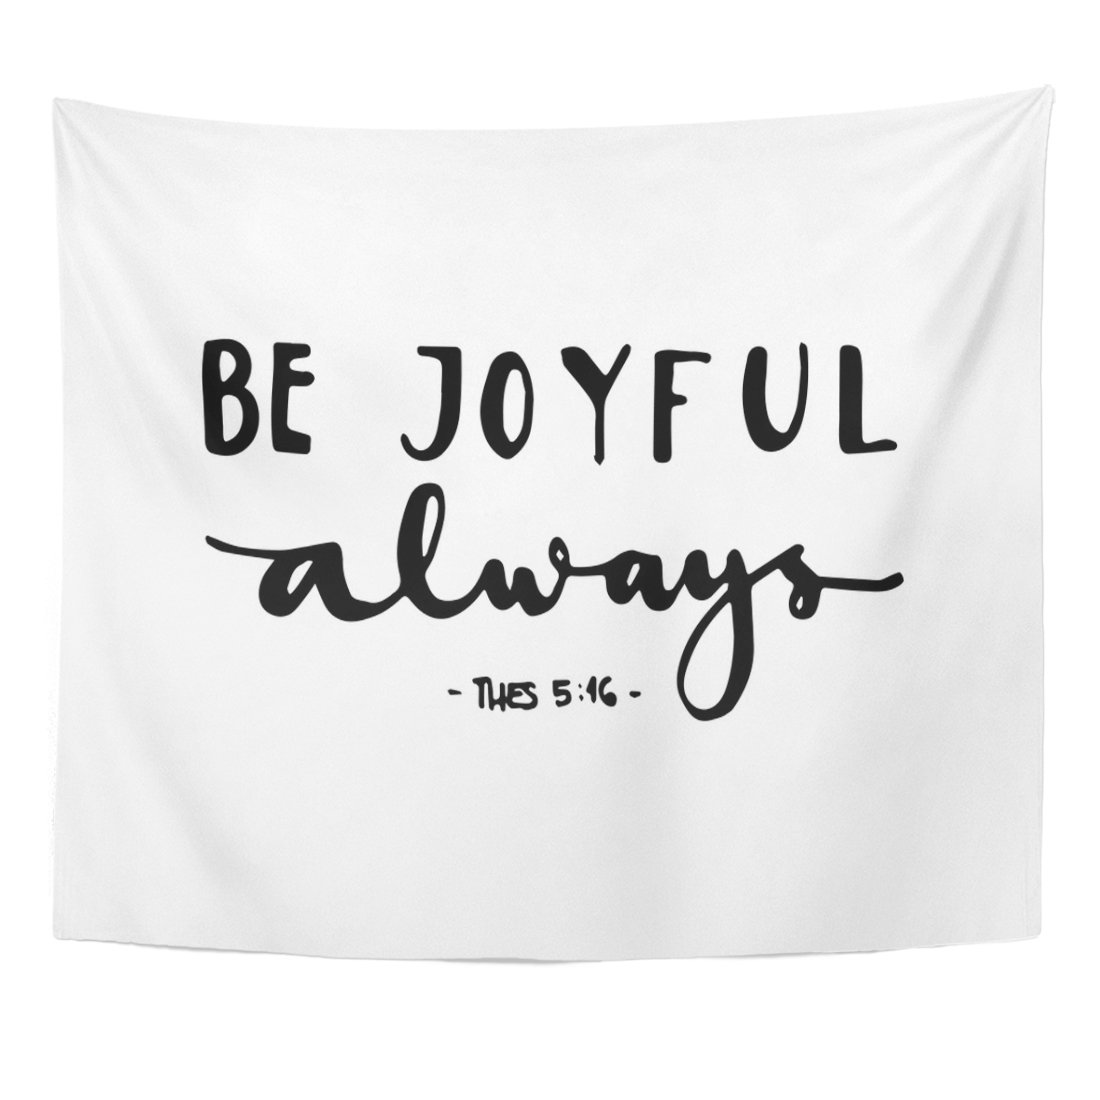 Breezat Tapestry Religious Be Joyful Bible Verse Hand Lettered Quote Modern Calligraphy Christian Hope Home Decor Wall Hanging for Living Room Bedroom Dorm 50x60 Inches